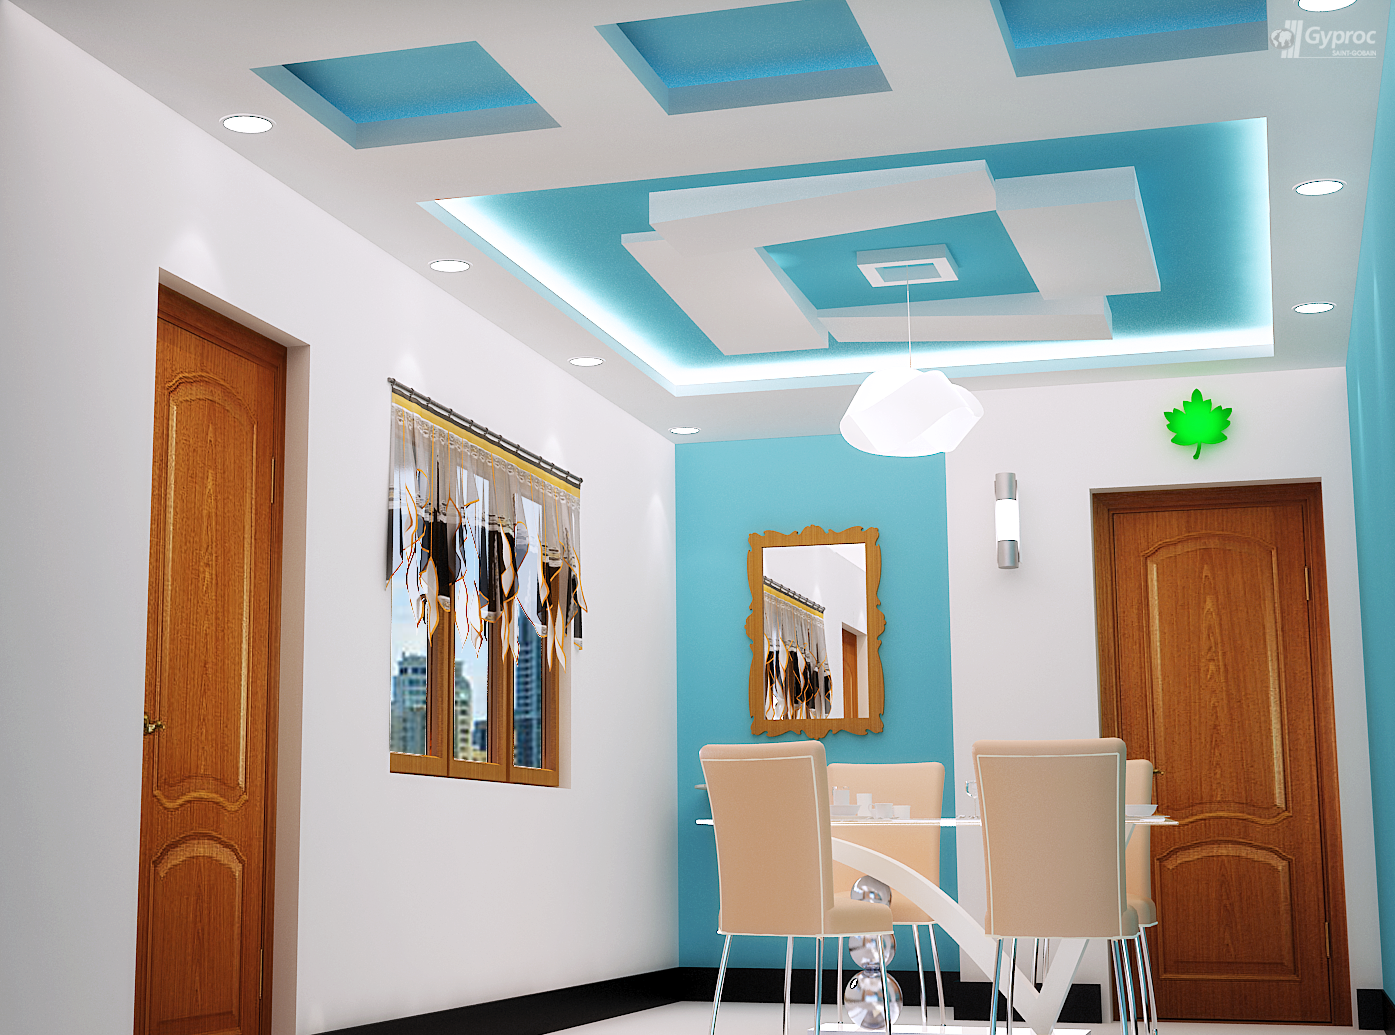 False ceiling designs for other rooms saint gobain 4 selling design